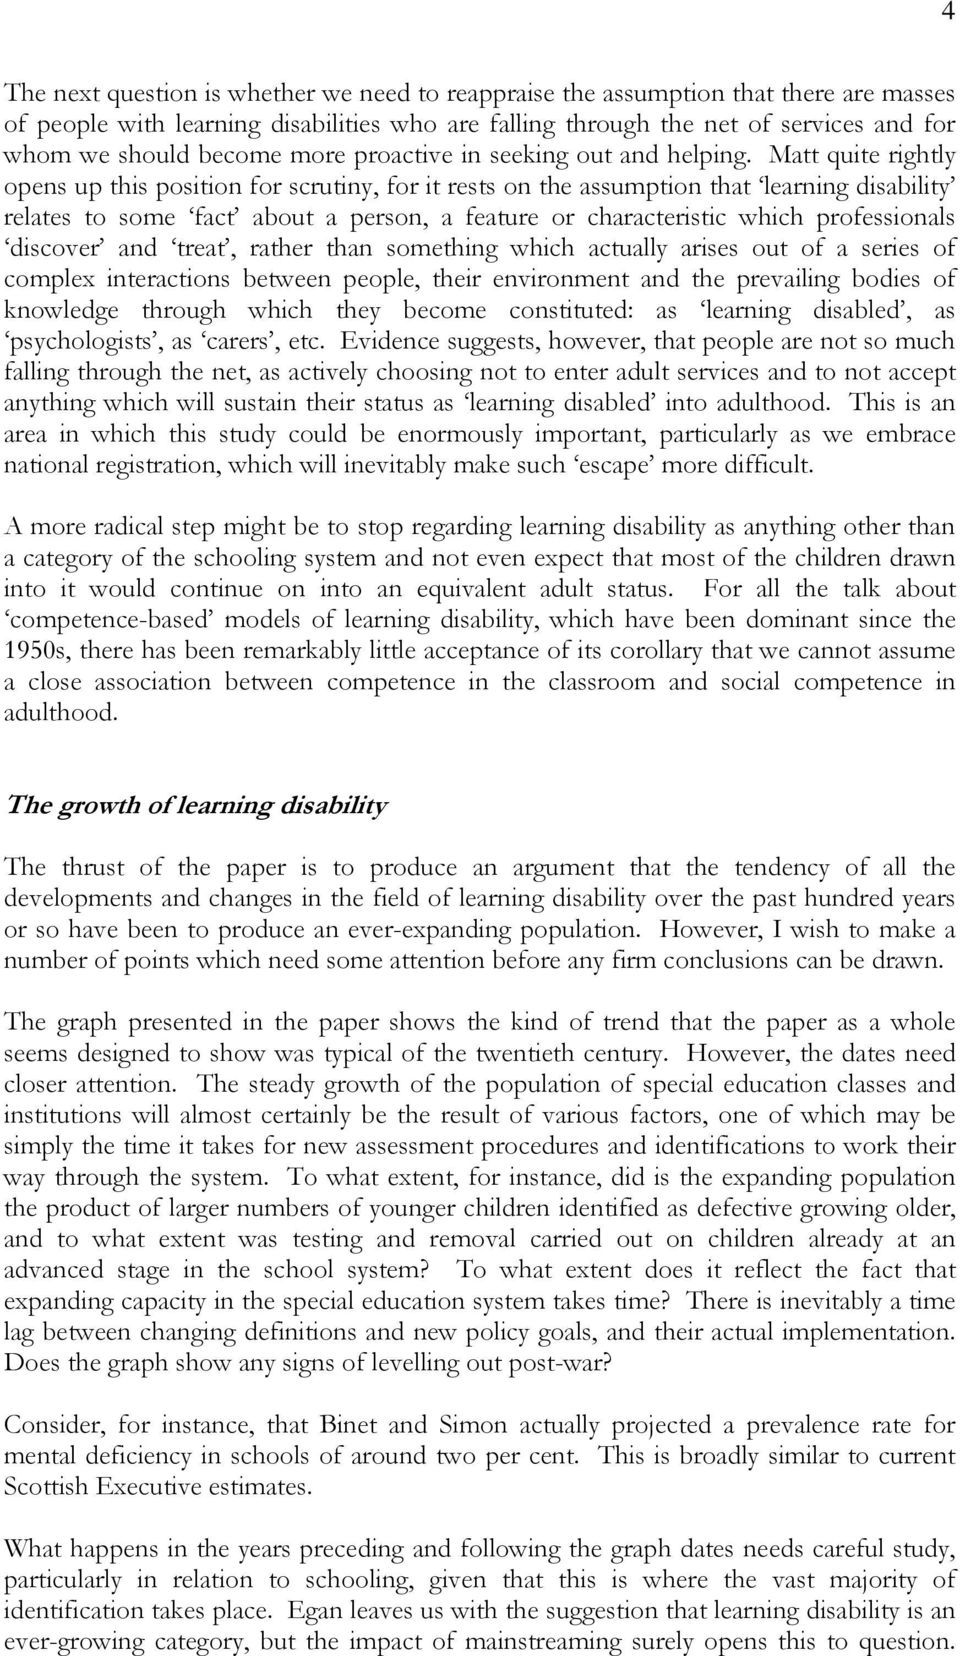 Matt quite rightly opens up this position for scrutiny, for it rests on the assumption that learning disability relates to some fact about a person, a feature or characteristic which professionals